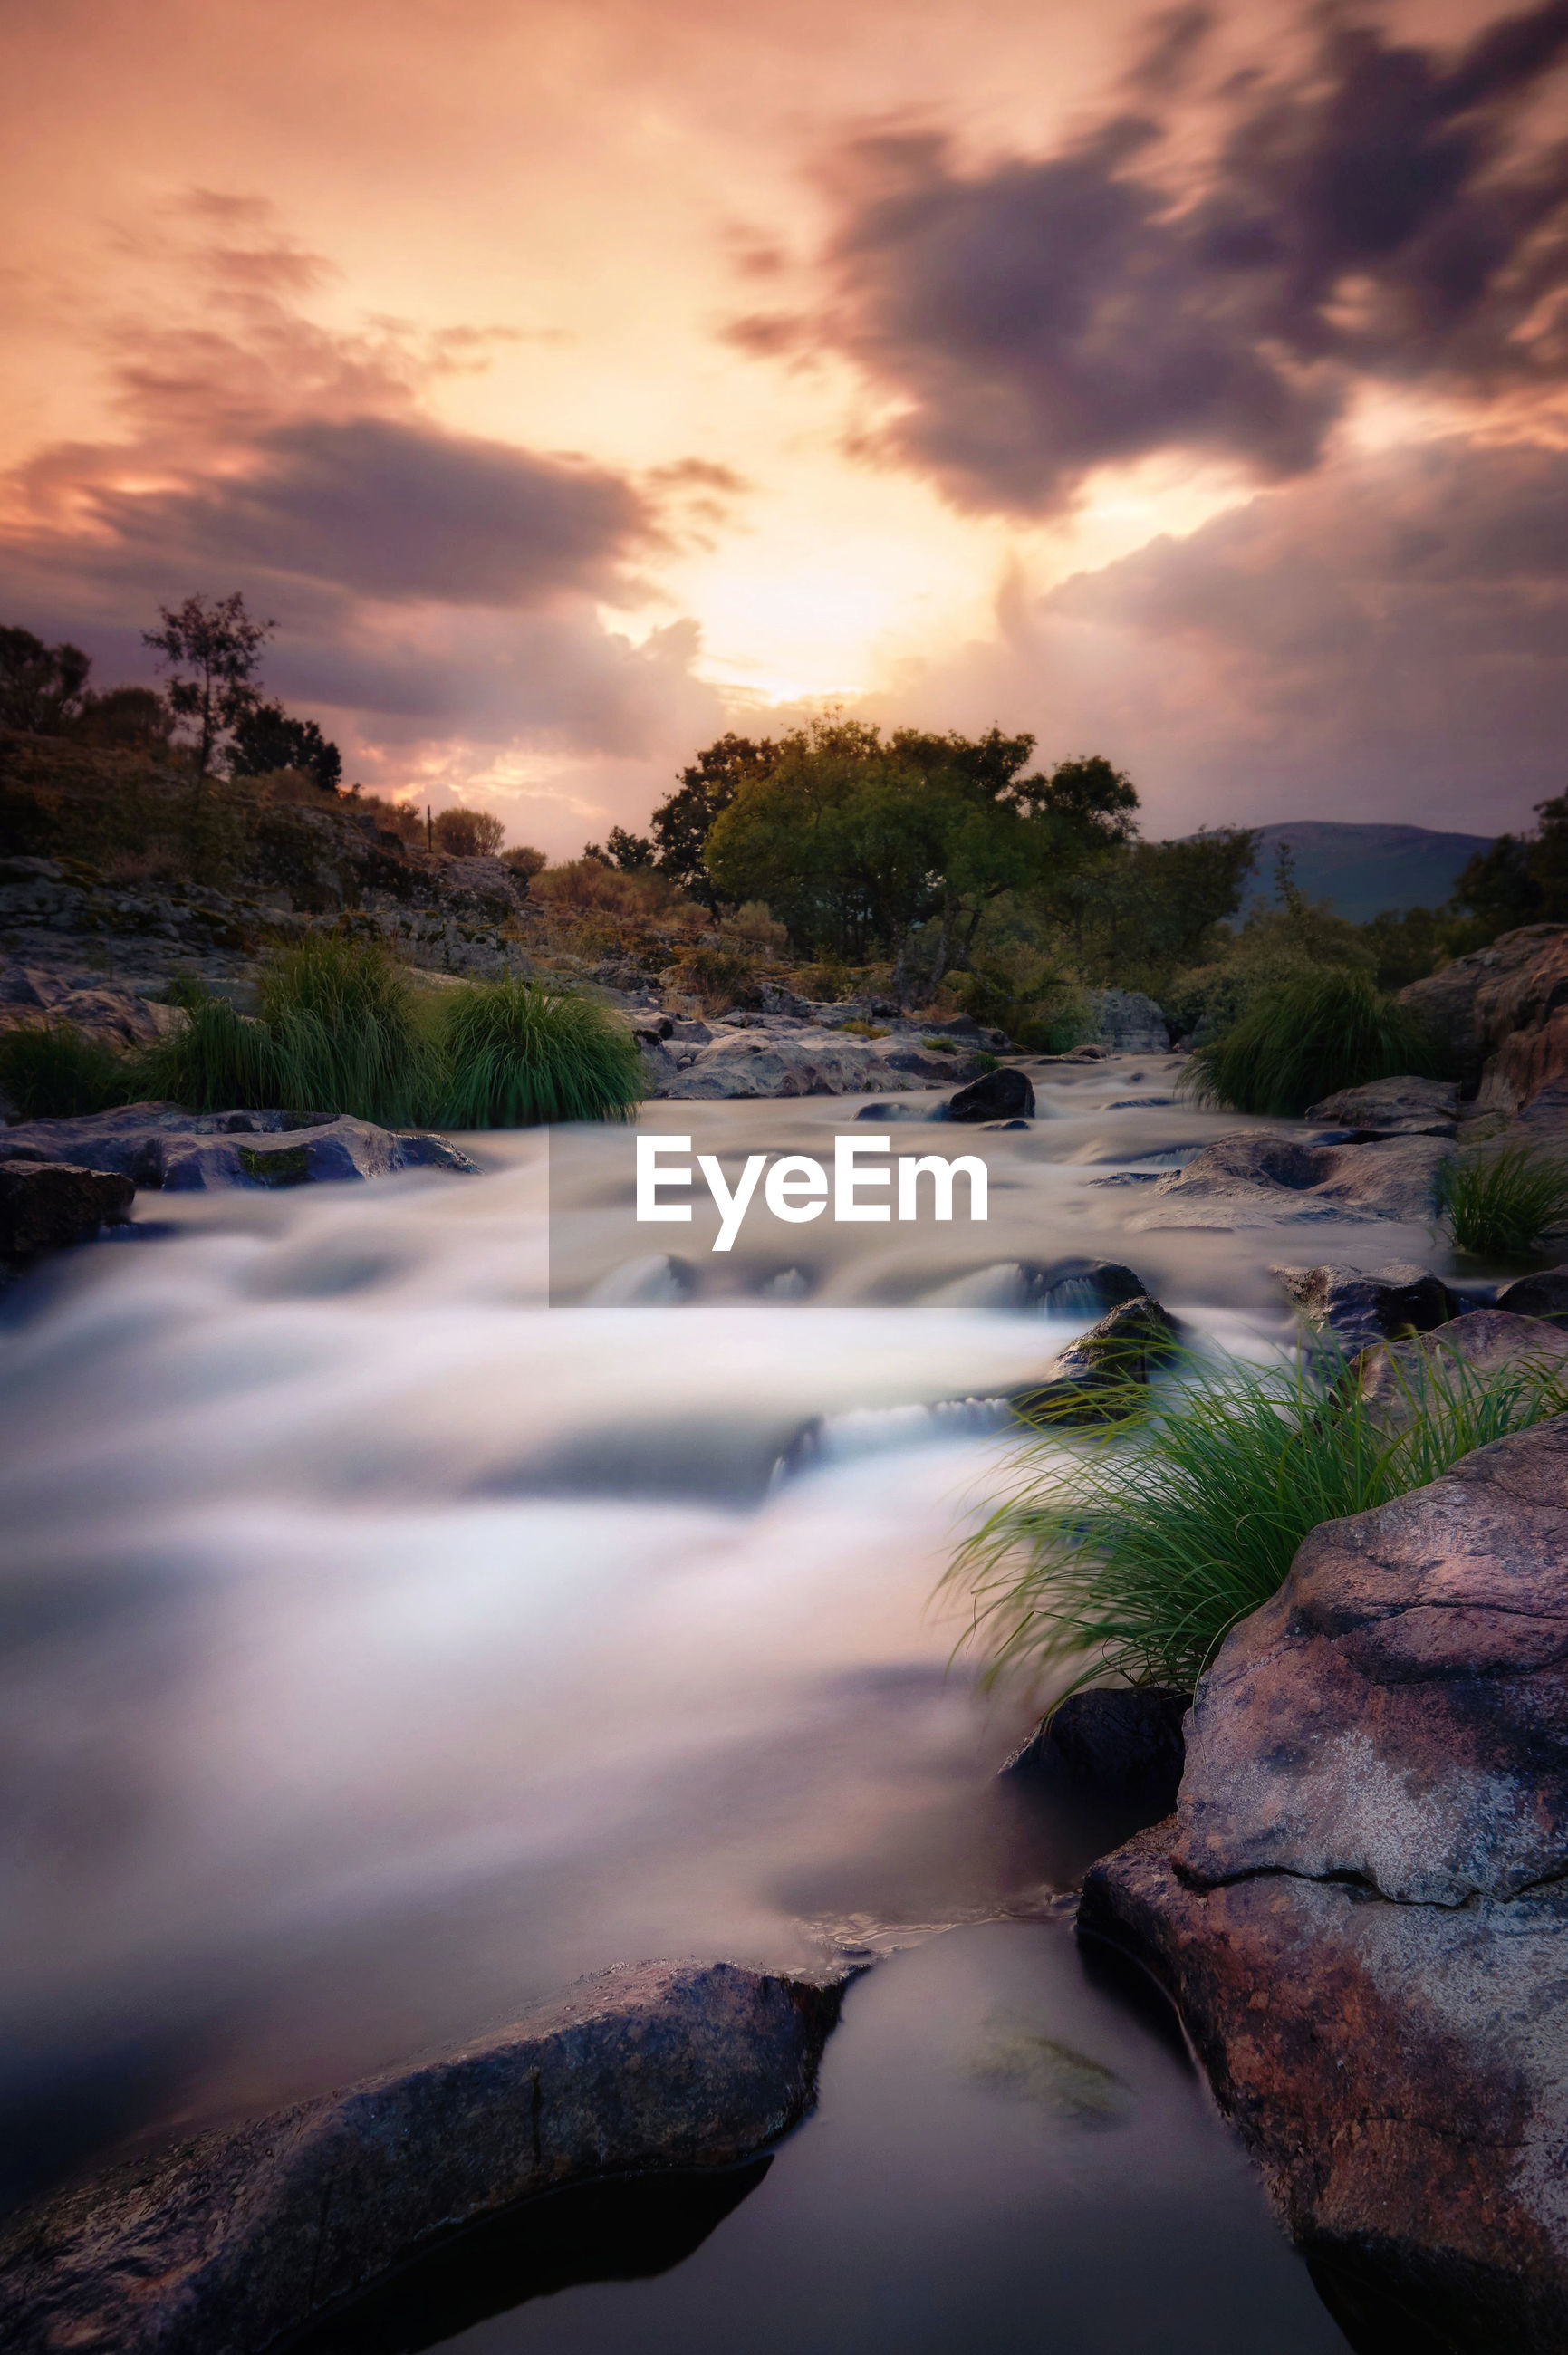 SCENIC VIEW OF WATER FLOWING THROUGH ROCKS DURING SUNSET